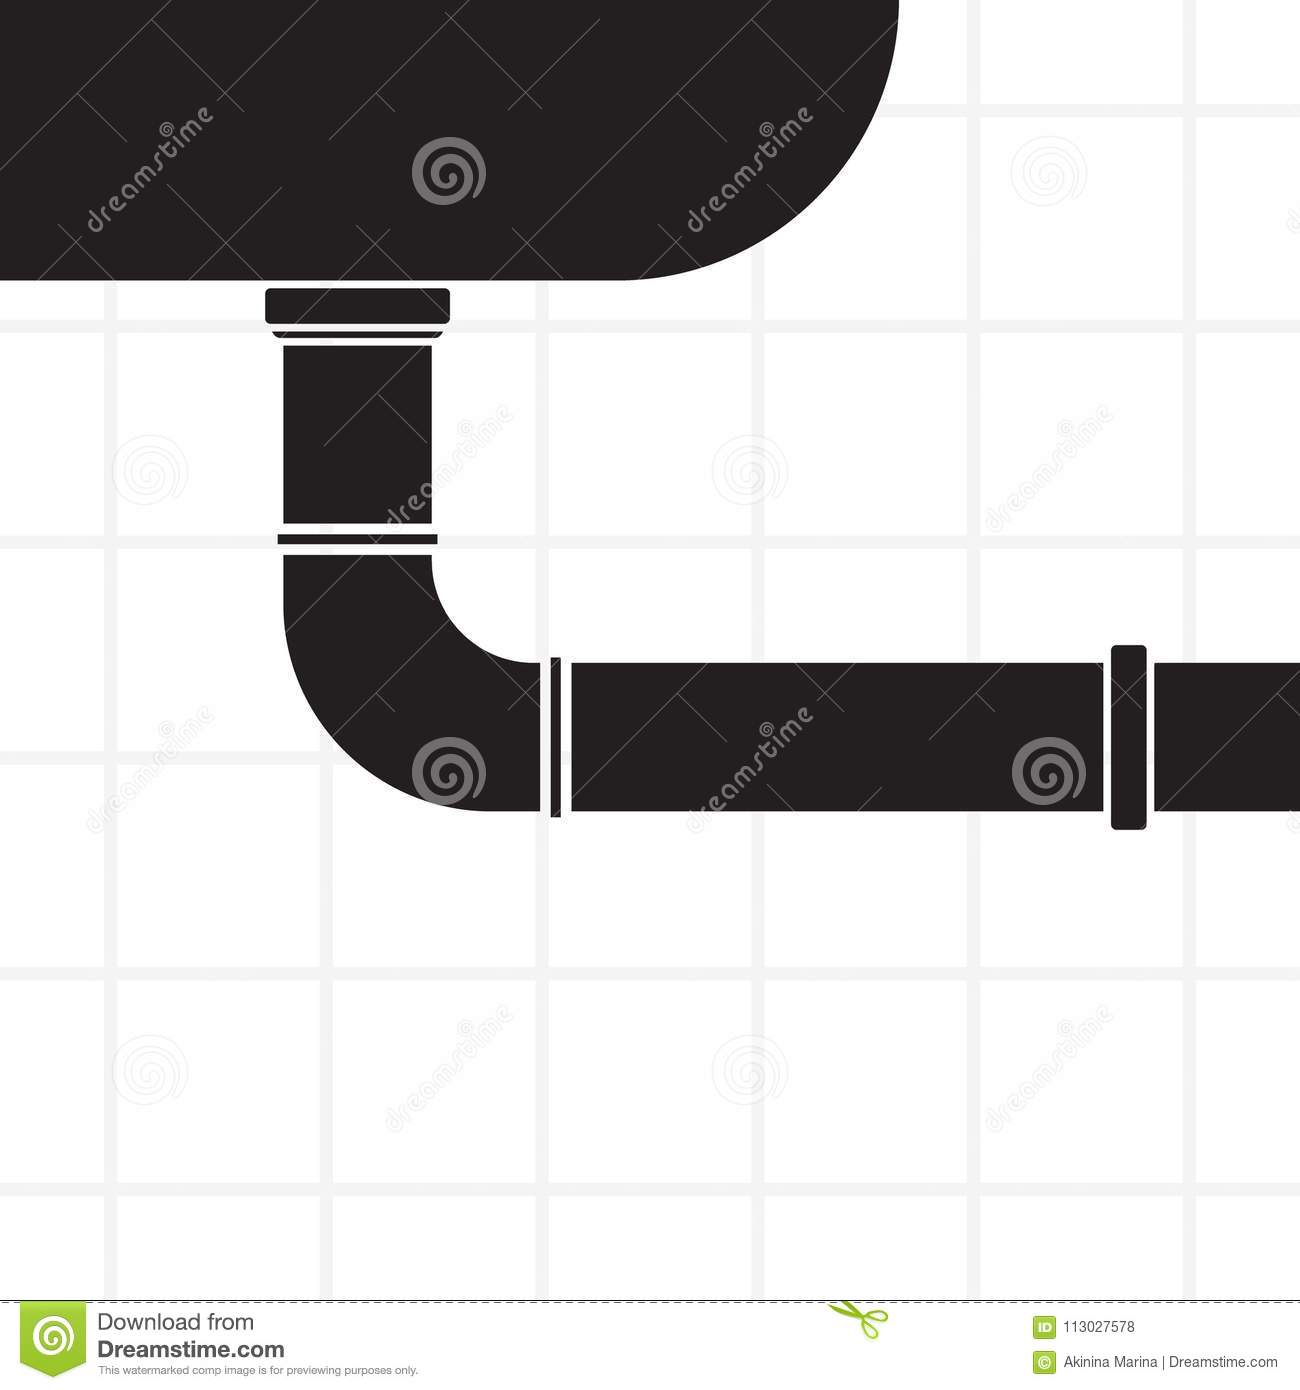 Carved Silhouette Flat Background Simple Vector Design Sink An Kitchen Water Line Plumbing Diagram And Pipe Illustration For Sanitary Engineering Repairs In House Bathroom Symbol Of Sewerage